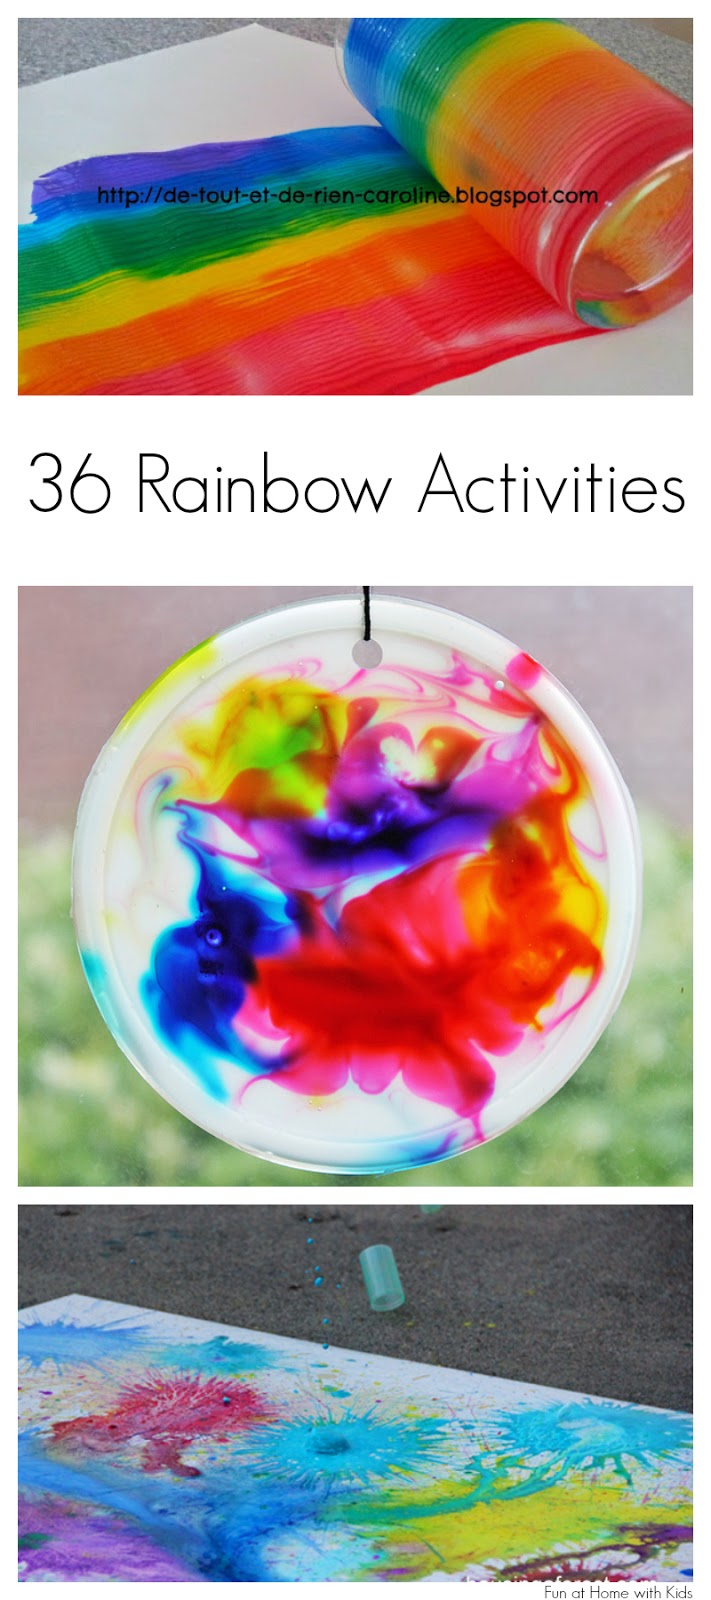 36 rainbow activities for babies toddlers preschoolers for Craft paint safe for babies